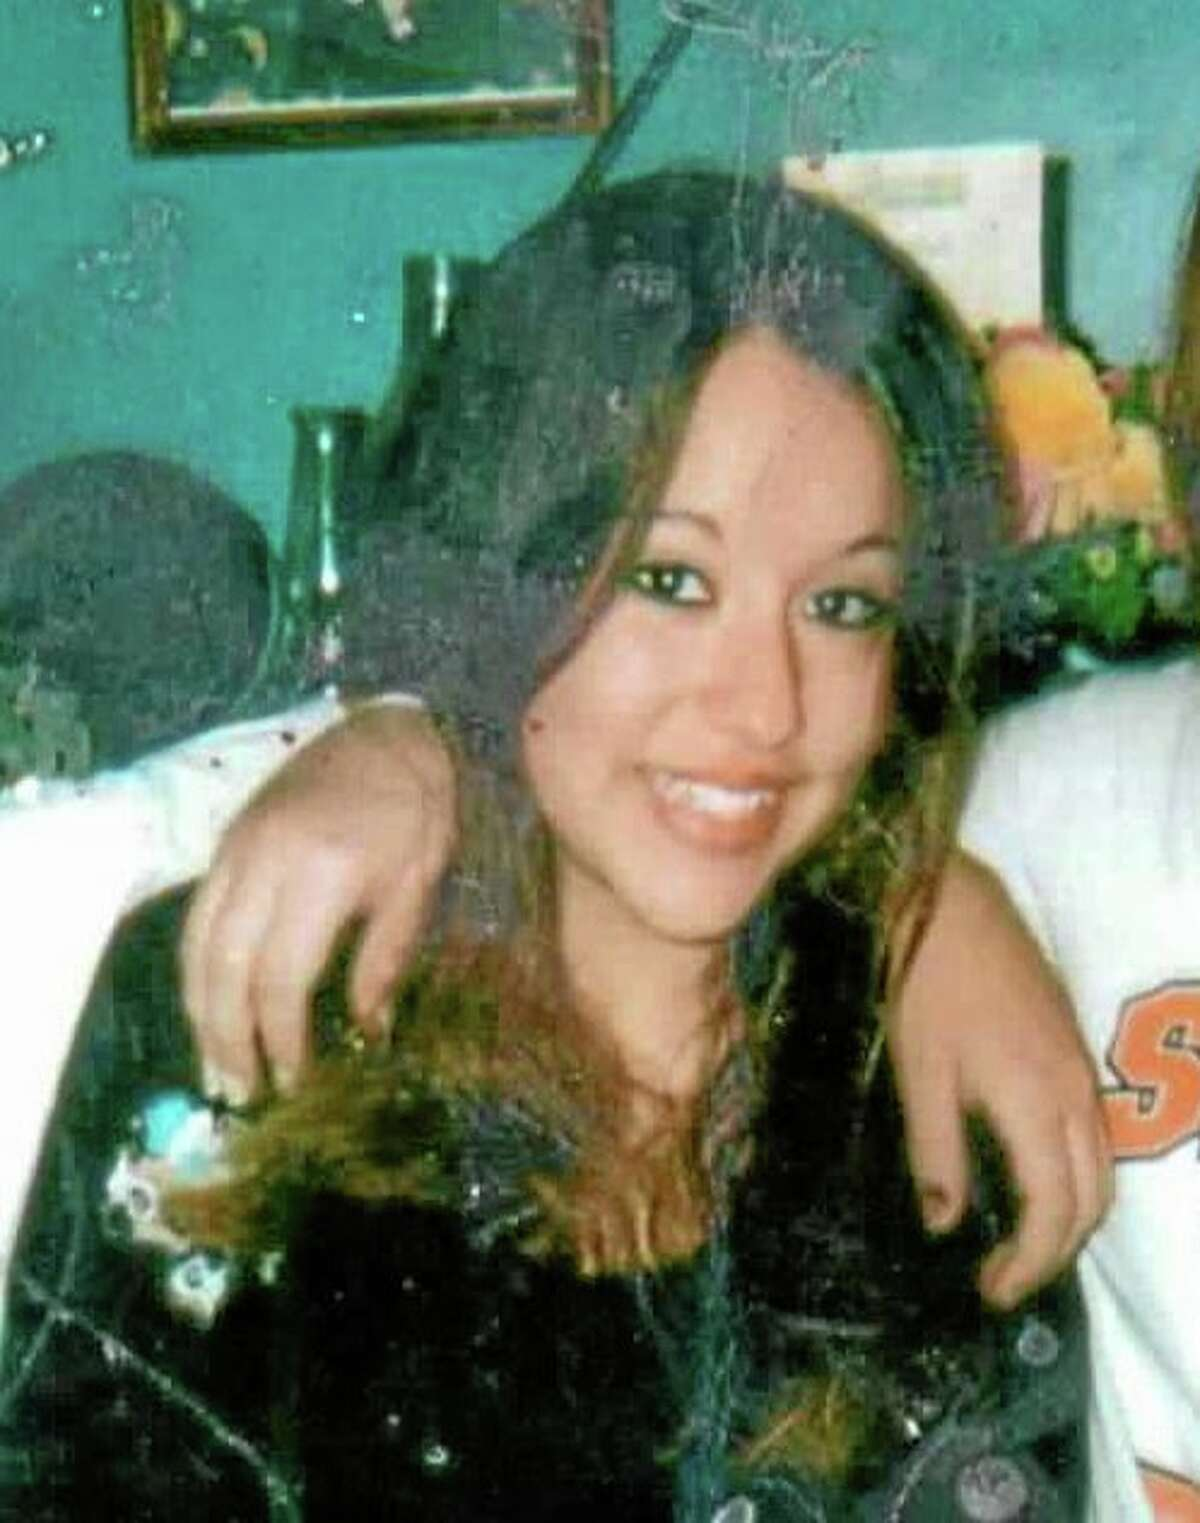 This undated photo courtesy of Auliea Hanlon shows Cherice Moralez, who was raped in 2007 when she was 14 by teacher Stacey Rambold in Billings, Mont. Rambold is due to be released from prison on Thursday, Sept. 26, 2013 after serving just 30 days. The short sentence triggered a backlash against the judge who handled the case, including calls for him to be removed from the bench. (AP Photo/Auliea Hanlon)